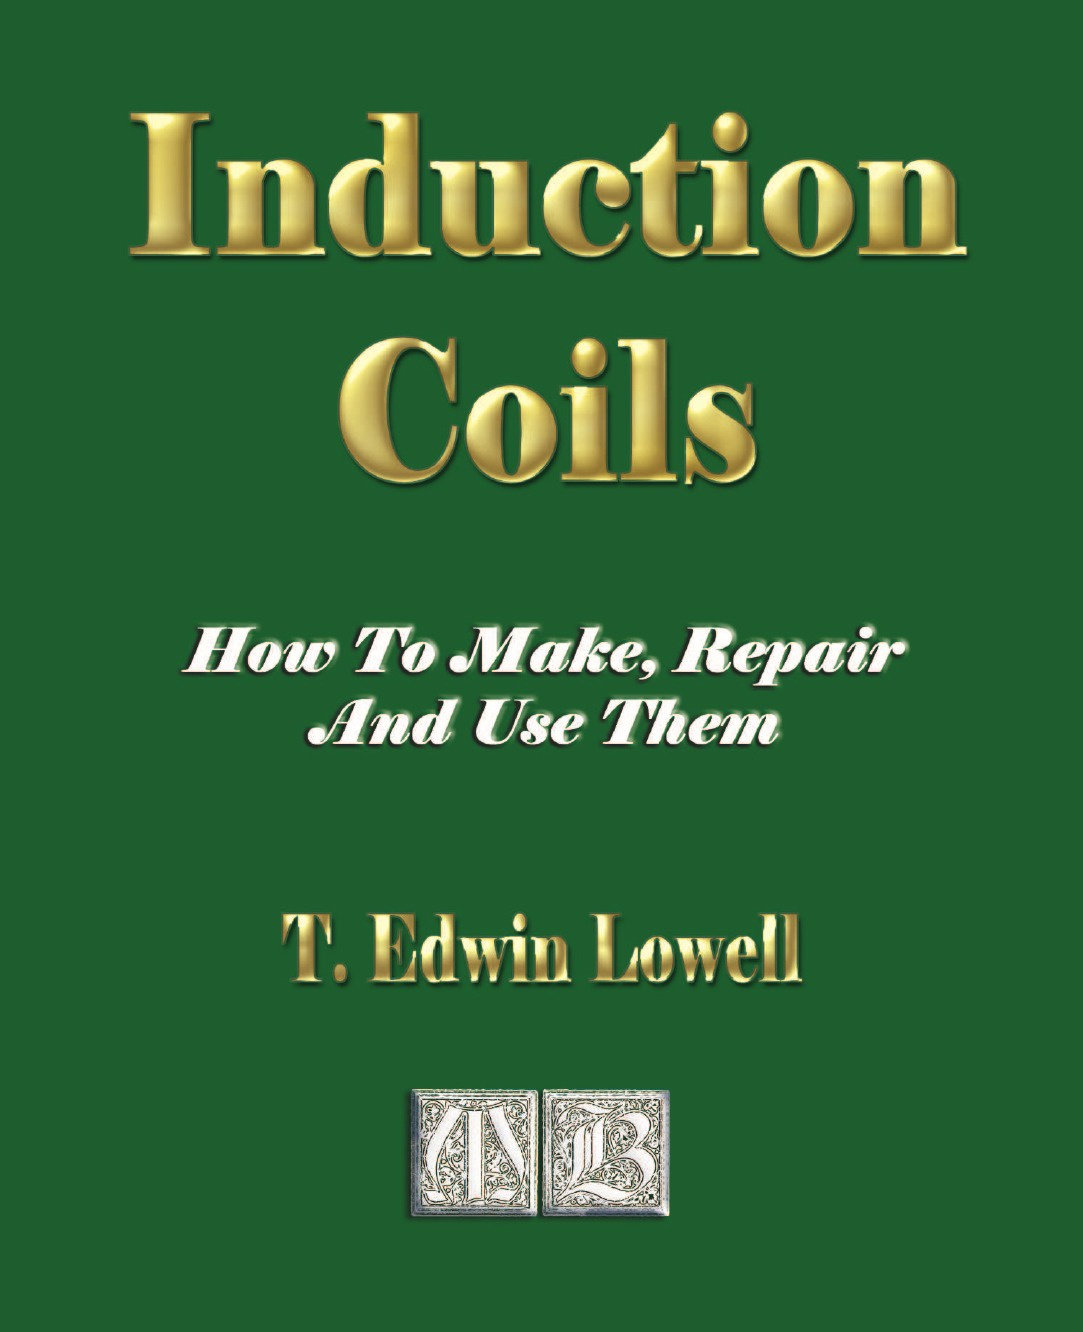 T. Edwin Lowell Induction Coils - How To Make, Repair And Use Them